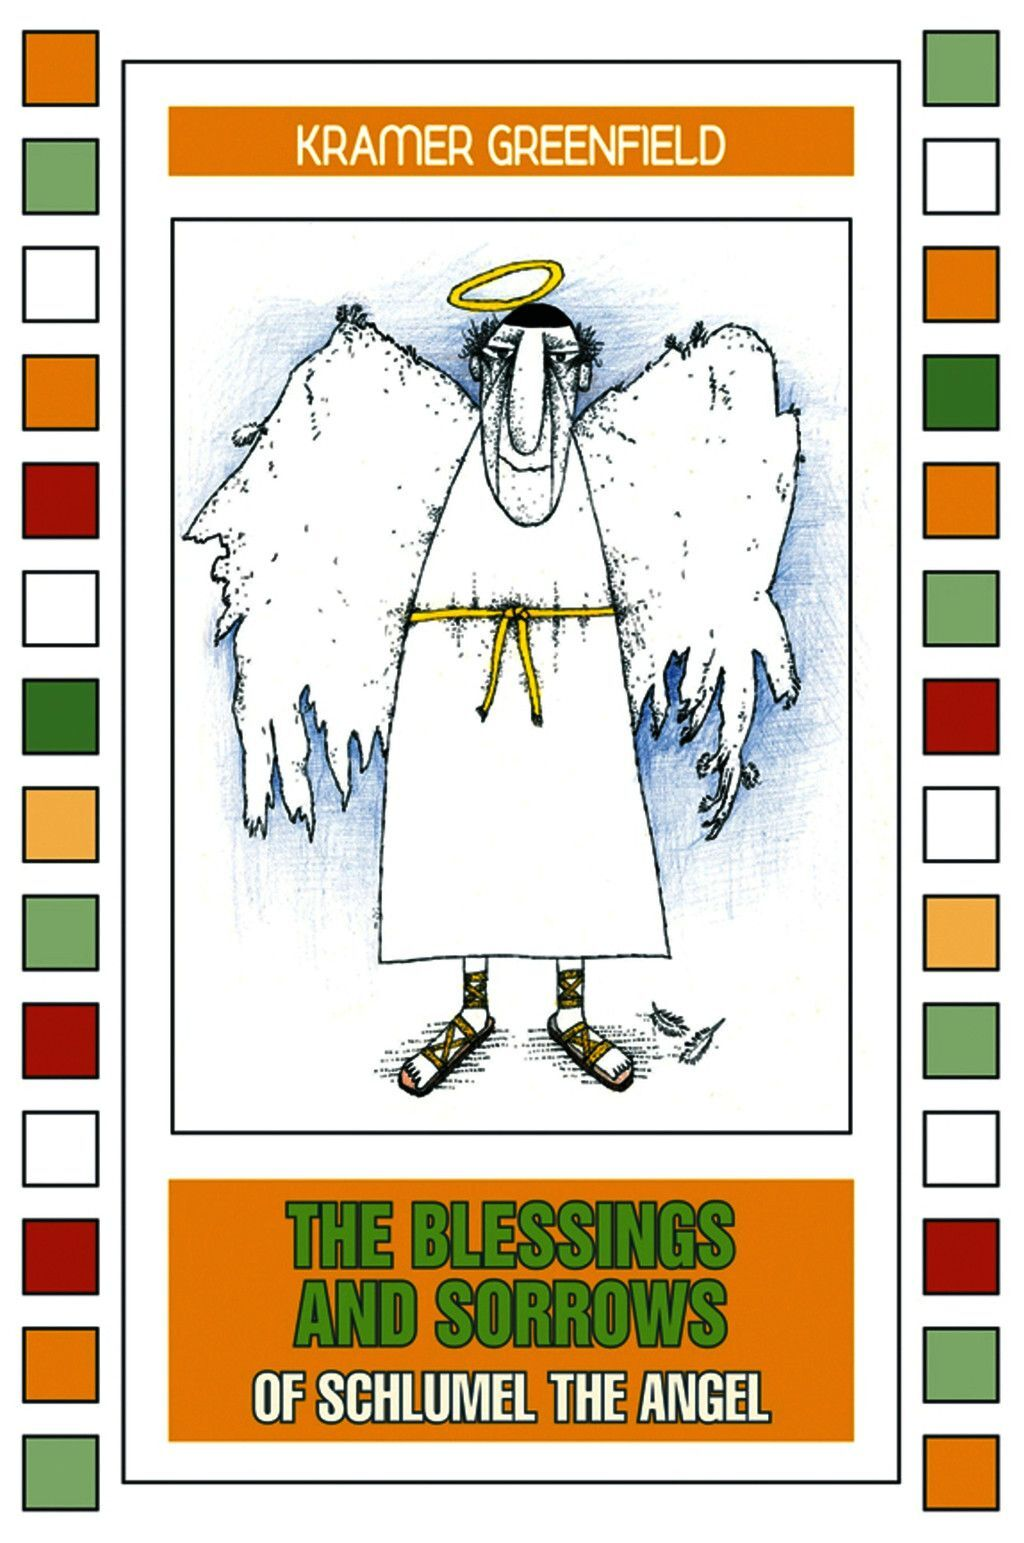 The Blessings And Sorrows Of Schlumel The Angel